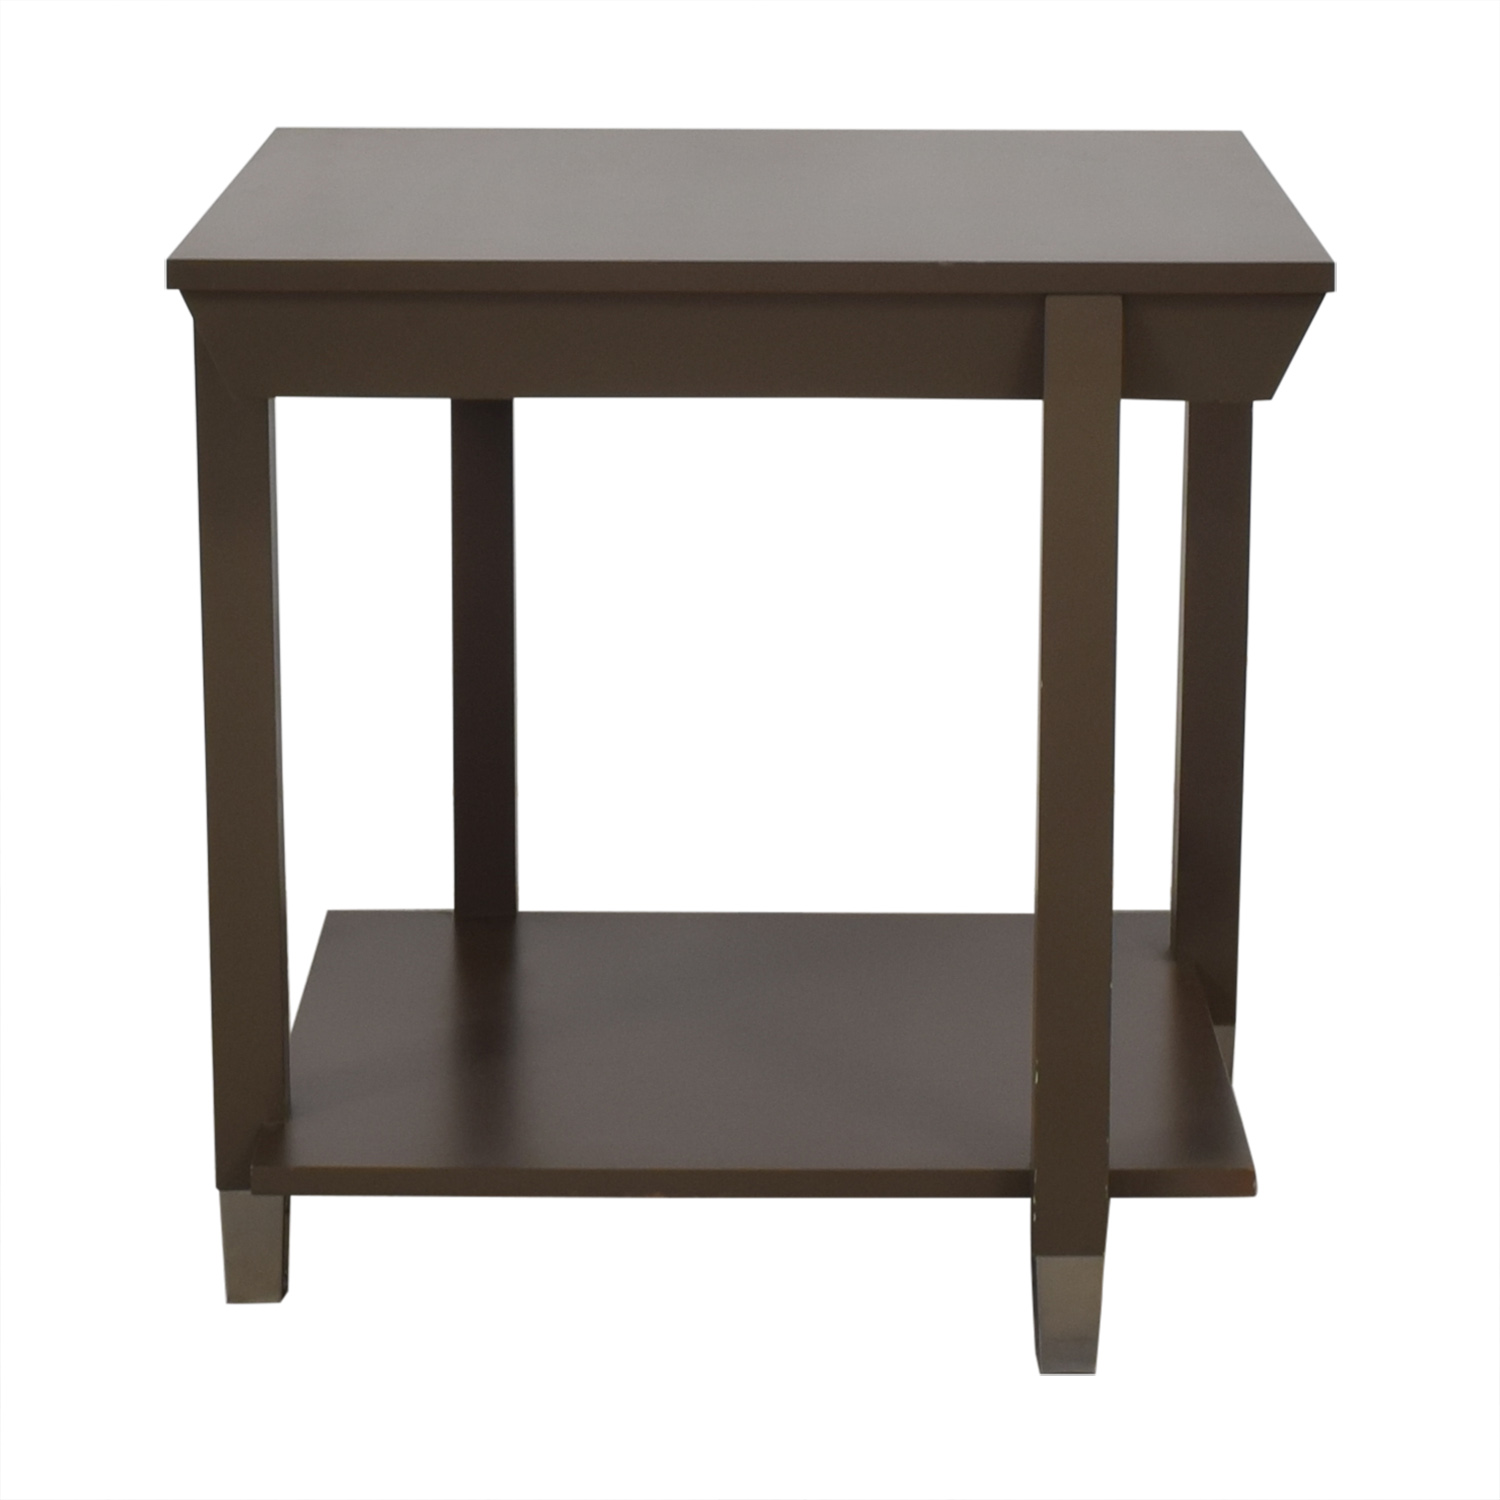 CTH Sherrill Occasional Furniture CTH Sherril Occasional Furniture Square End Table nj